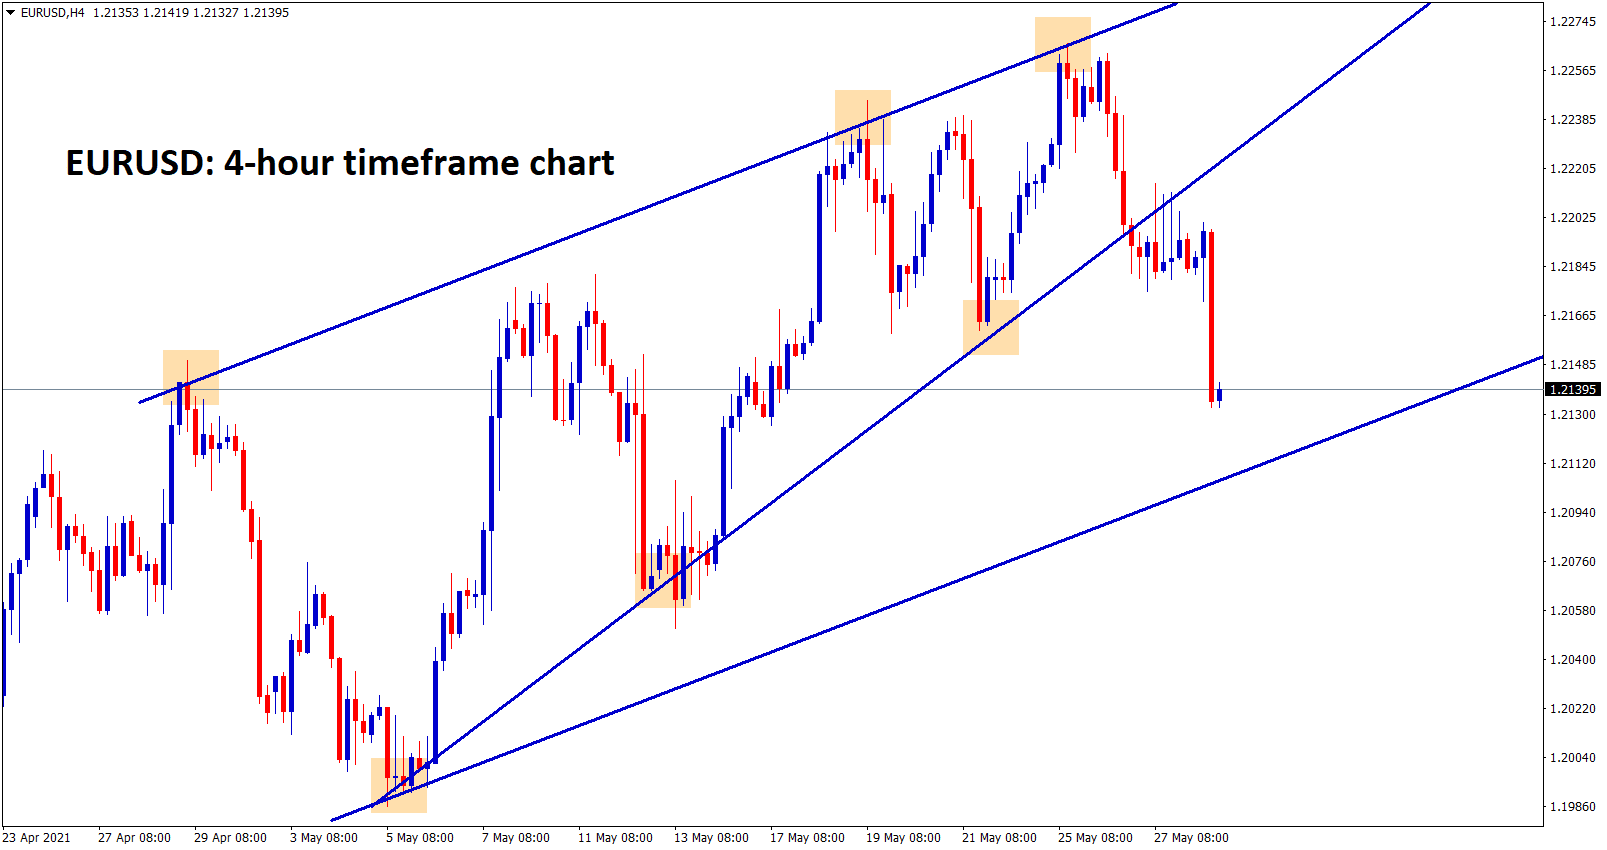 EURUSD has broken the rising wedge pattern but still moving in an Uptrend channel range